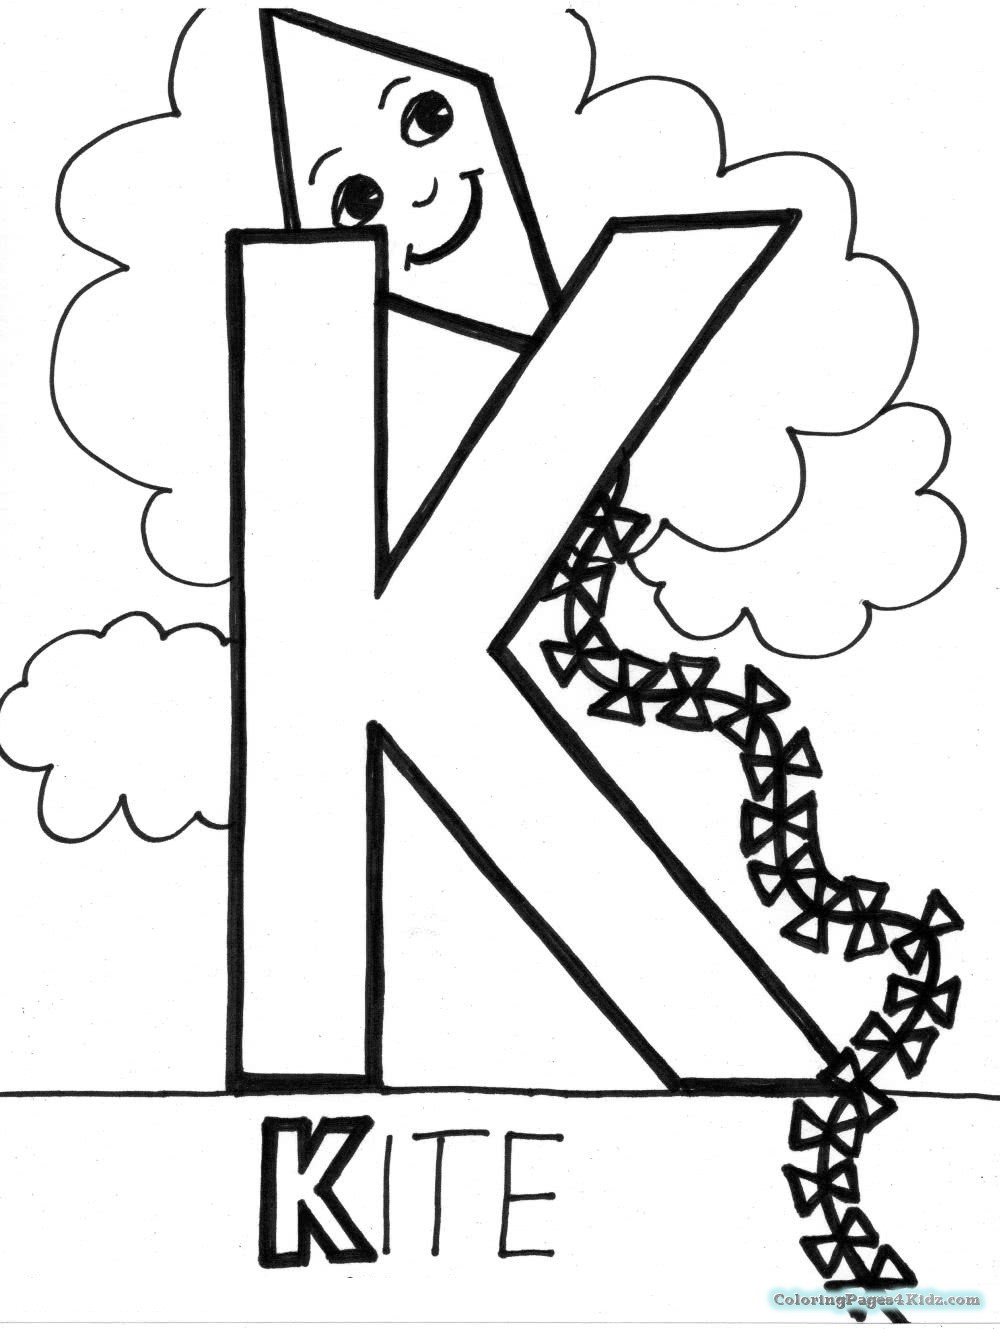 letter k coloring pages for adults crazy doodle letter k alphabet coloring doodle letter for adults pages coloring k